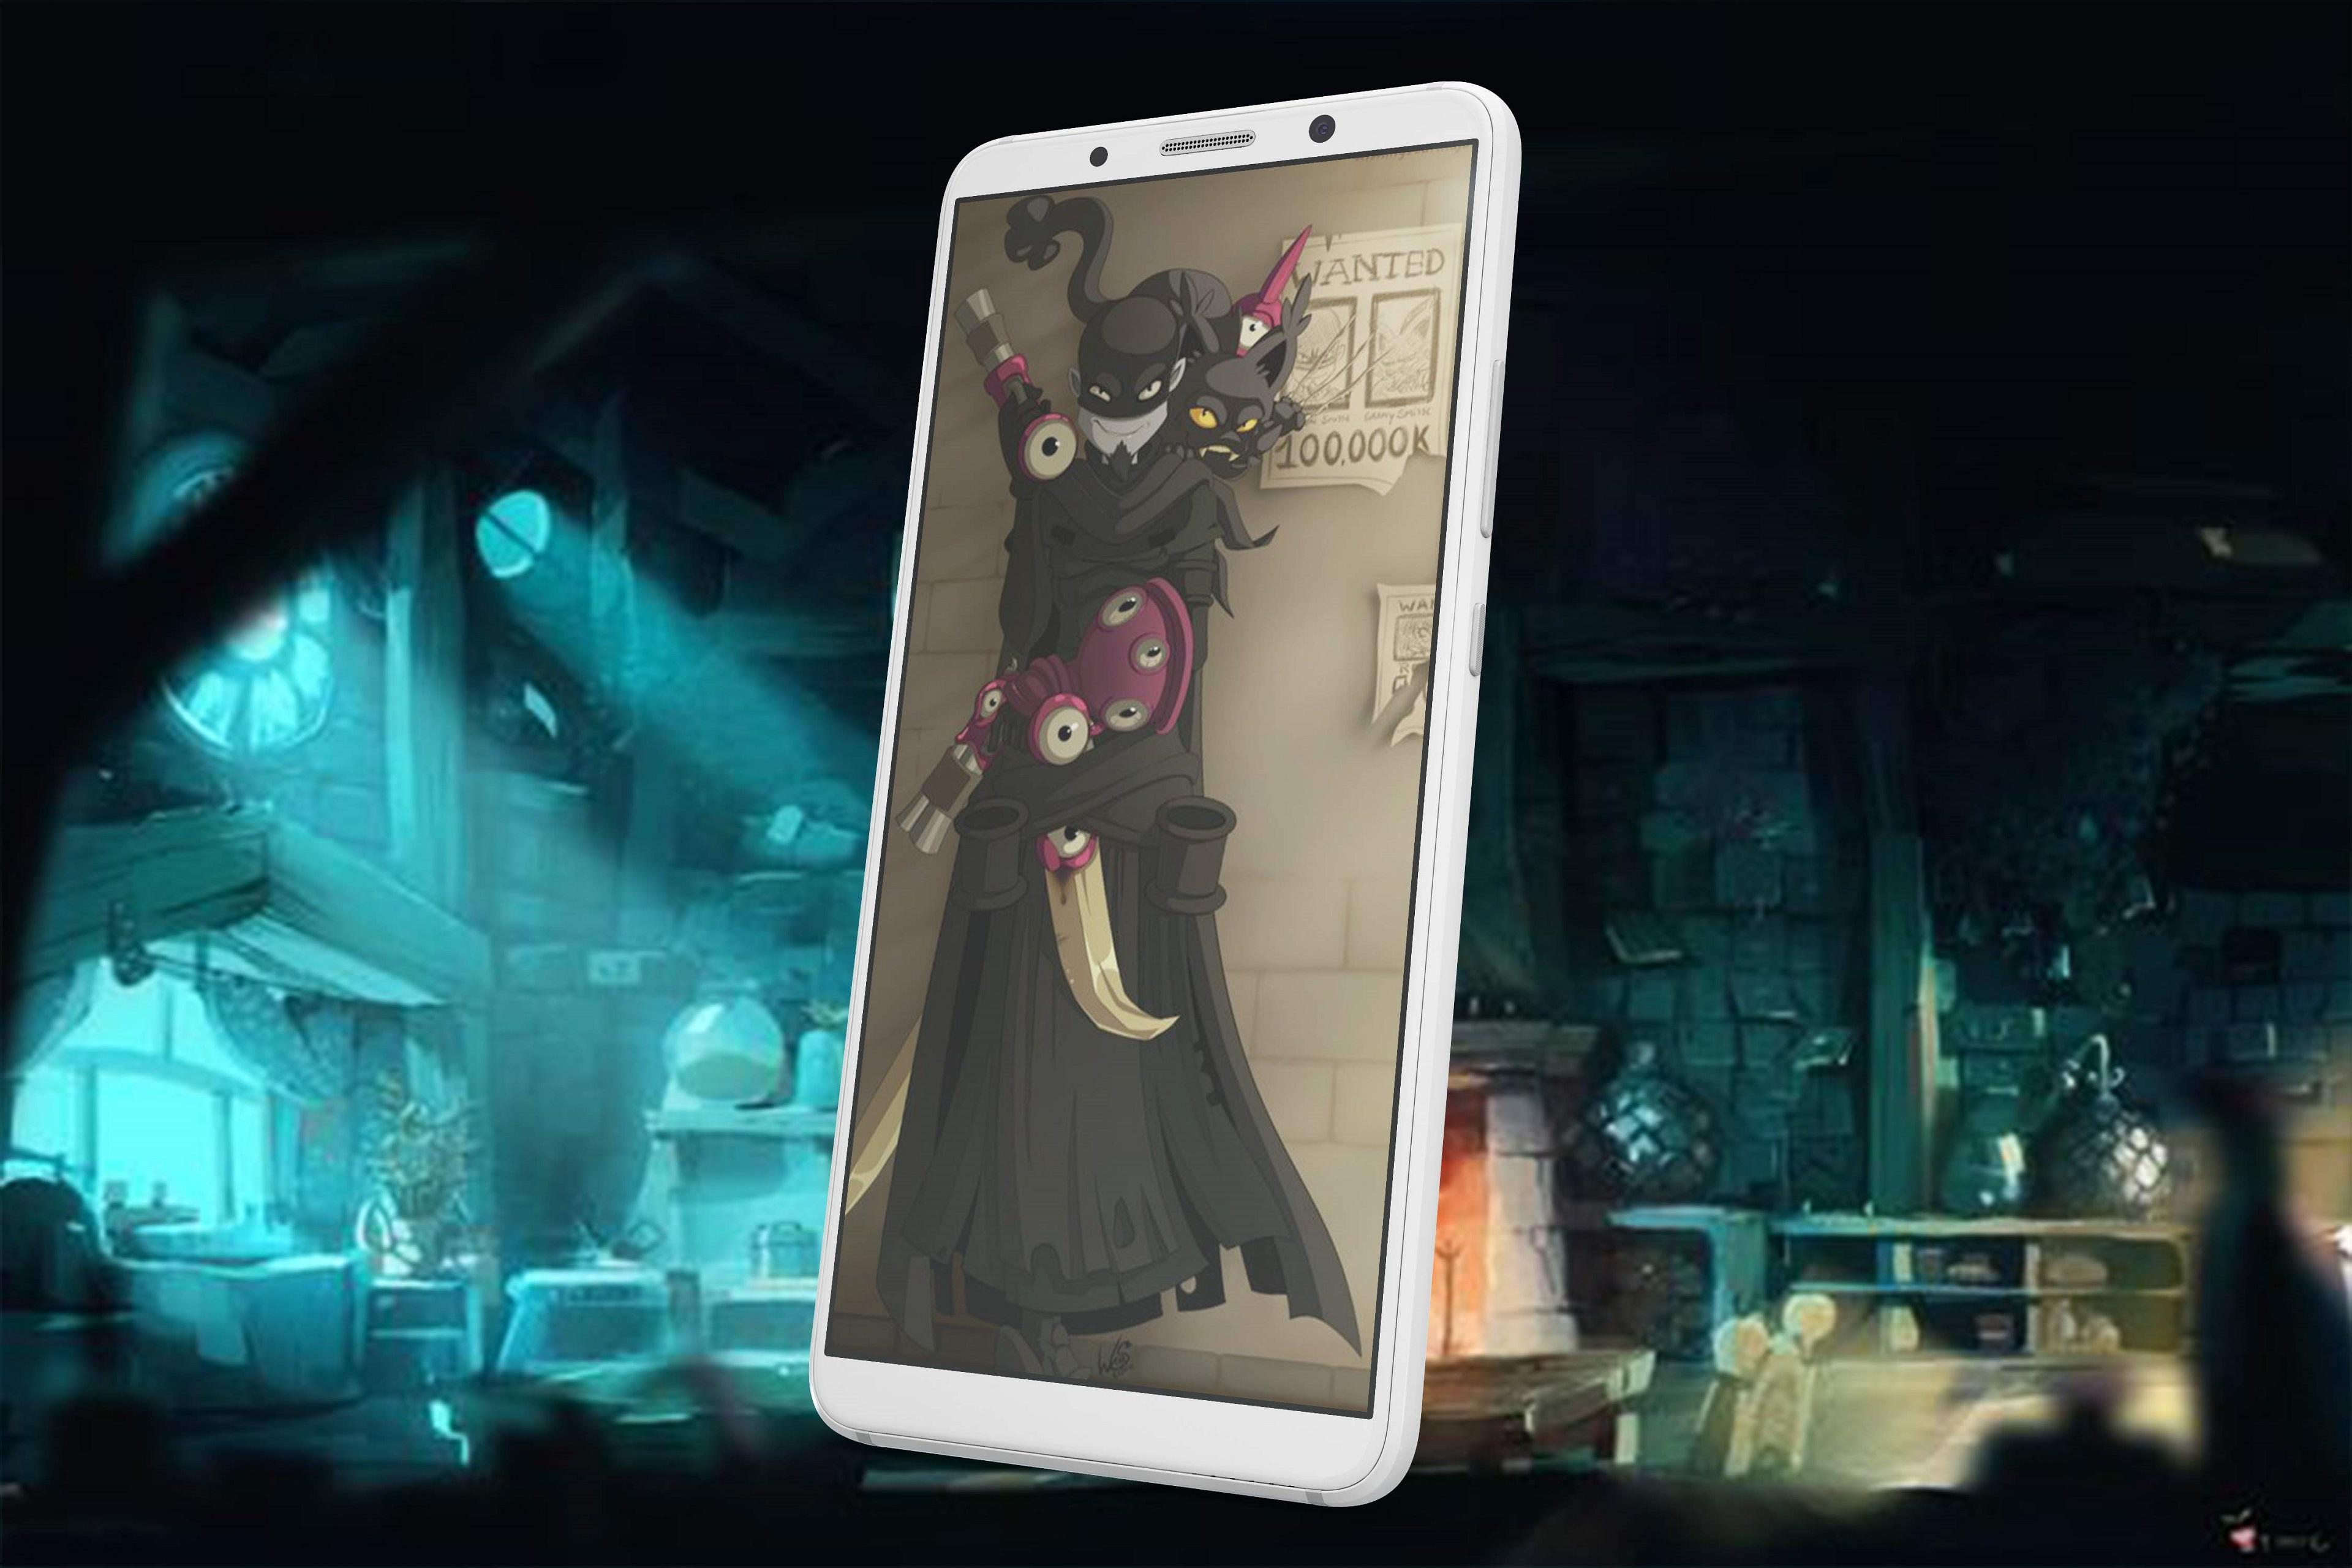 Wall Dofus Wallpaper For Android Apk Download